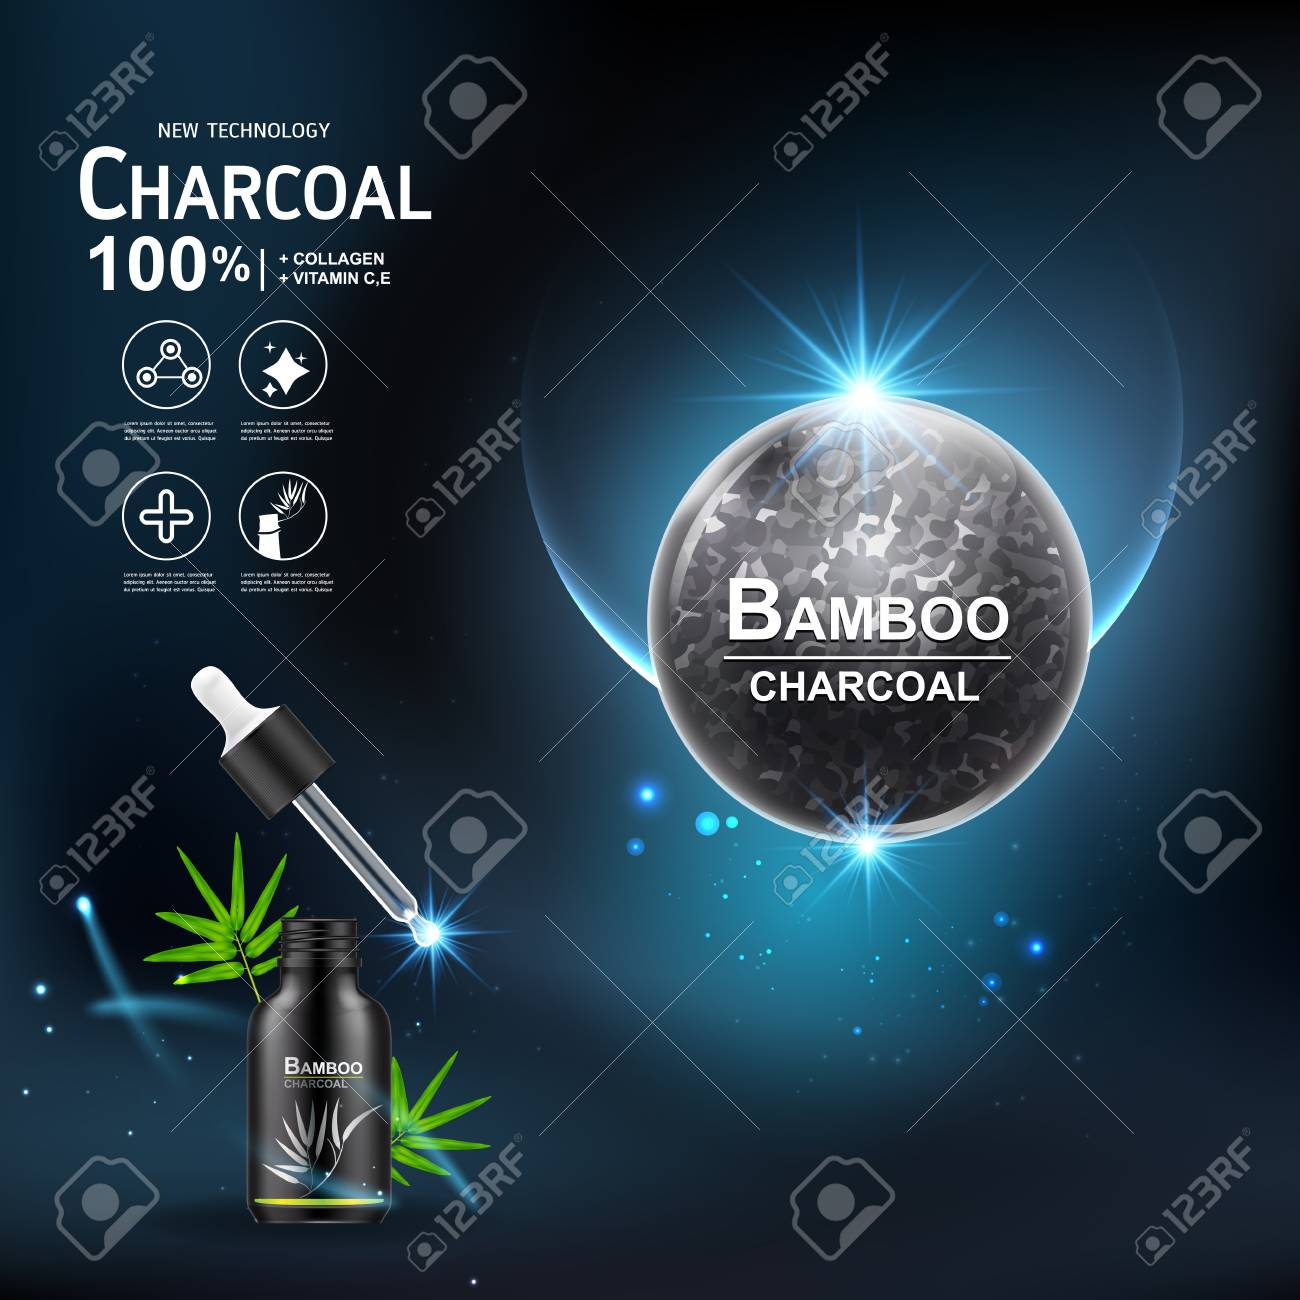 Collagen Serum and Vitamin Extract Charcoal Bamboo Vector Concept Skin Care Cosmetic. - 99701420